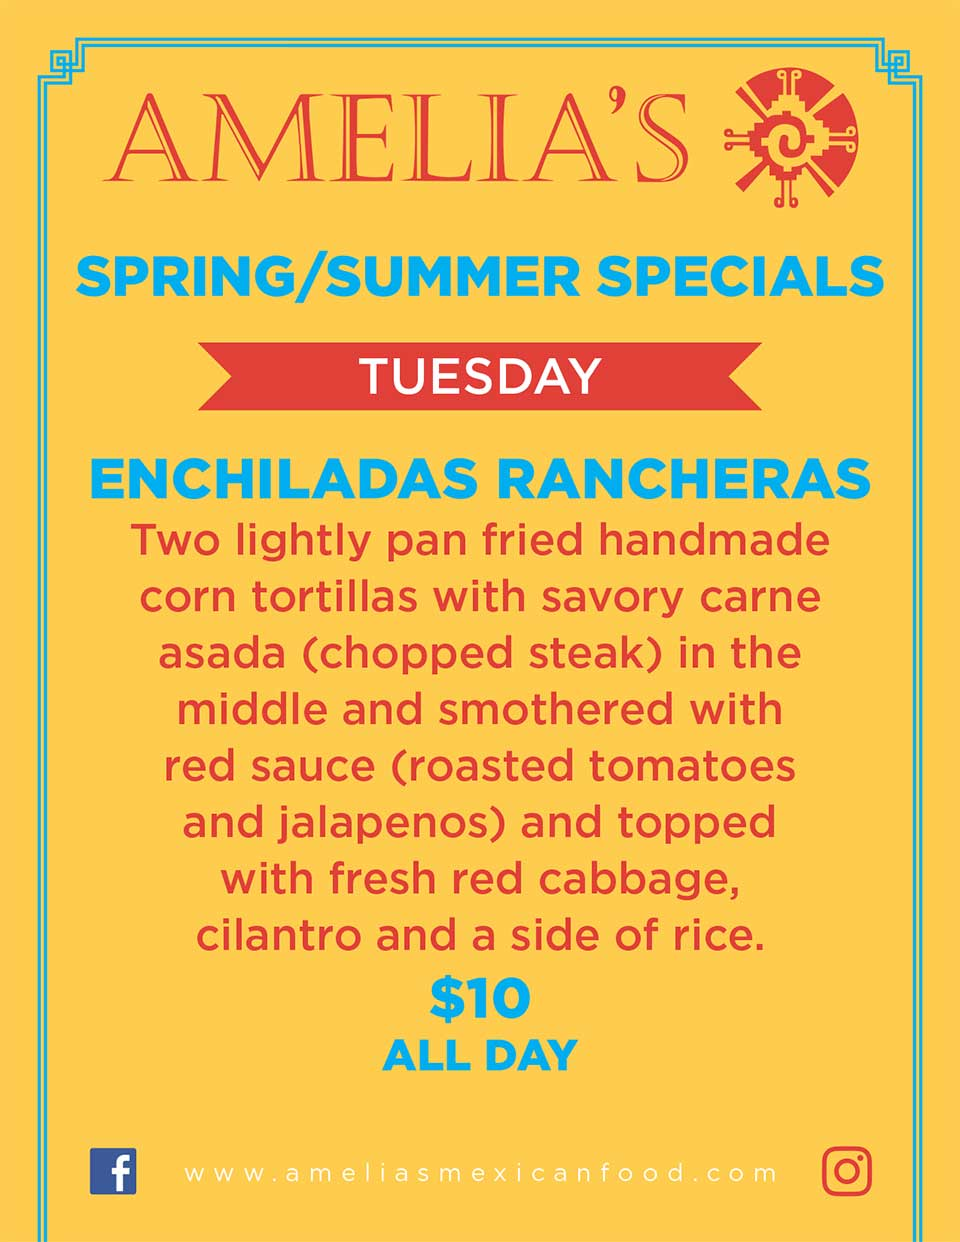 image of Amelia's spring & summer specials for tuesday